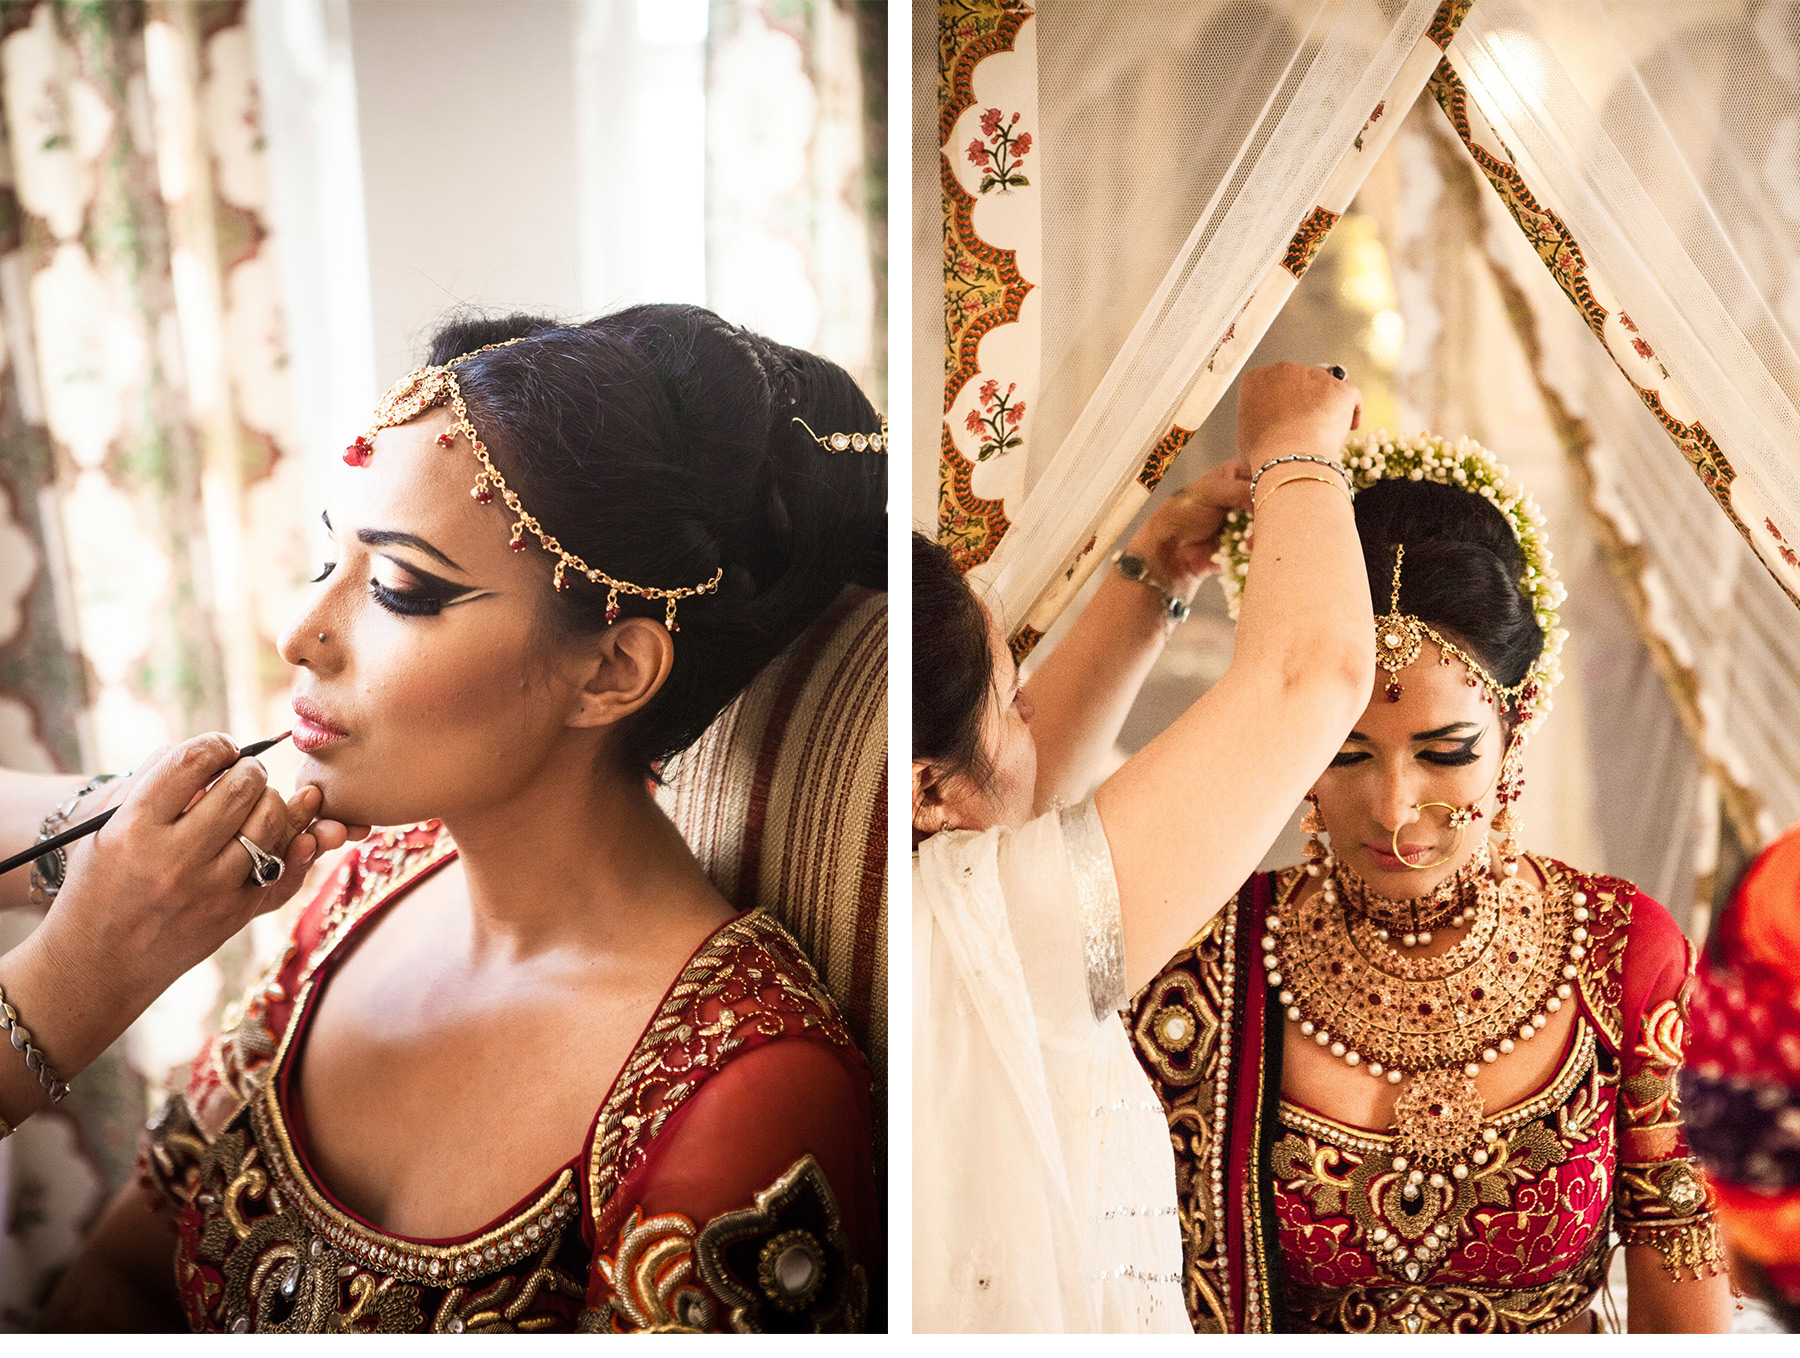 Our Muse - Vibrant Indian Wedding - Be inspired by Christina & Benjamin's colorful wedding in Rajasthan, India - indian bride, indian wedding, henna, jewelry, floral head piece, bride, groom, rajasthan, jaipur, wedding, colorful, ceremony, getting ready, henna